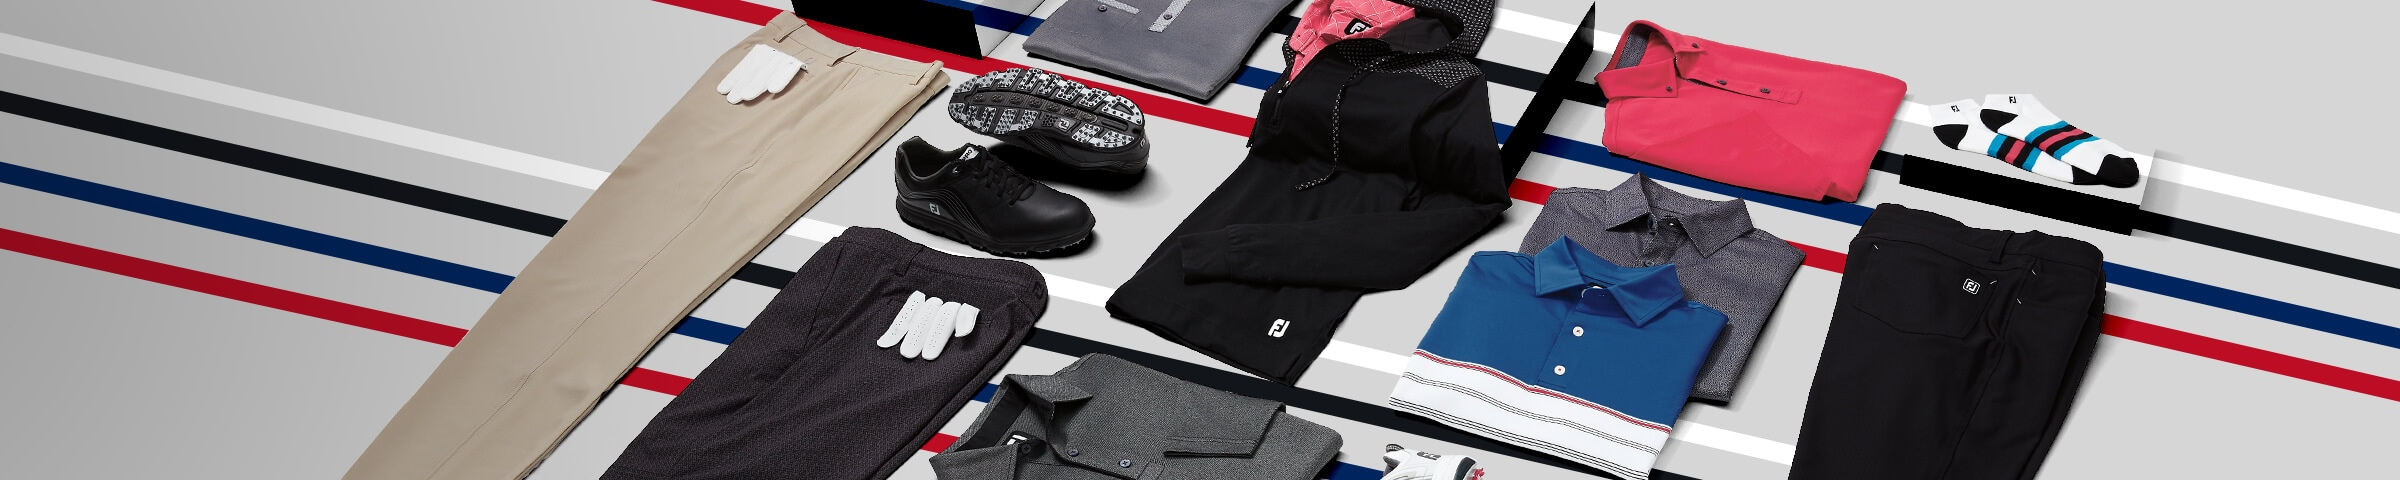 FootJoy 2019 Fall Men's Apparel Collection - Geneva